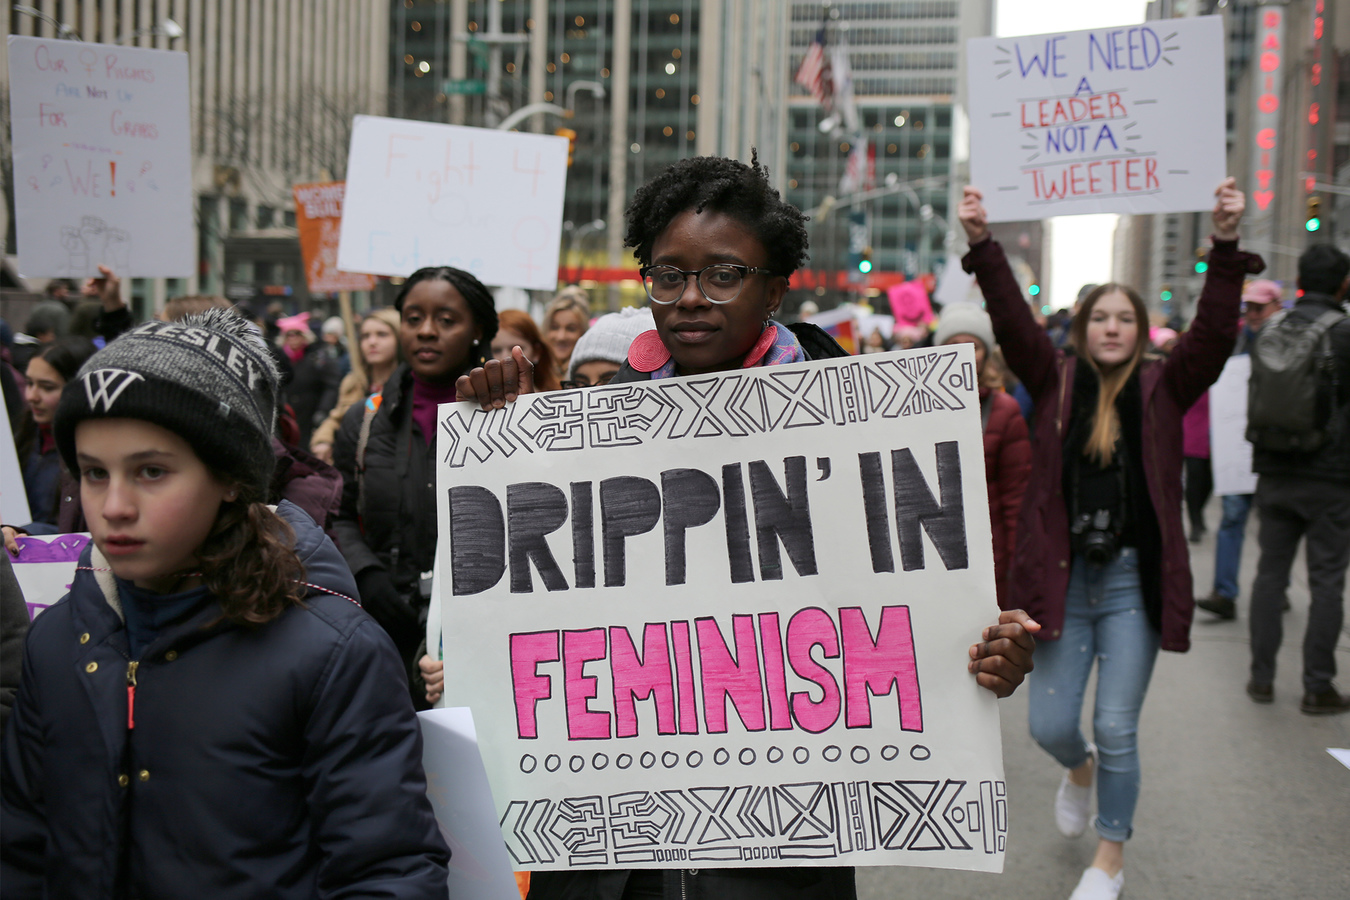 USA 2017- Women's March NYC 1/19/19